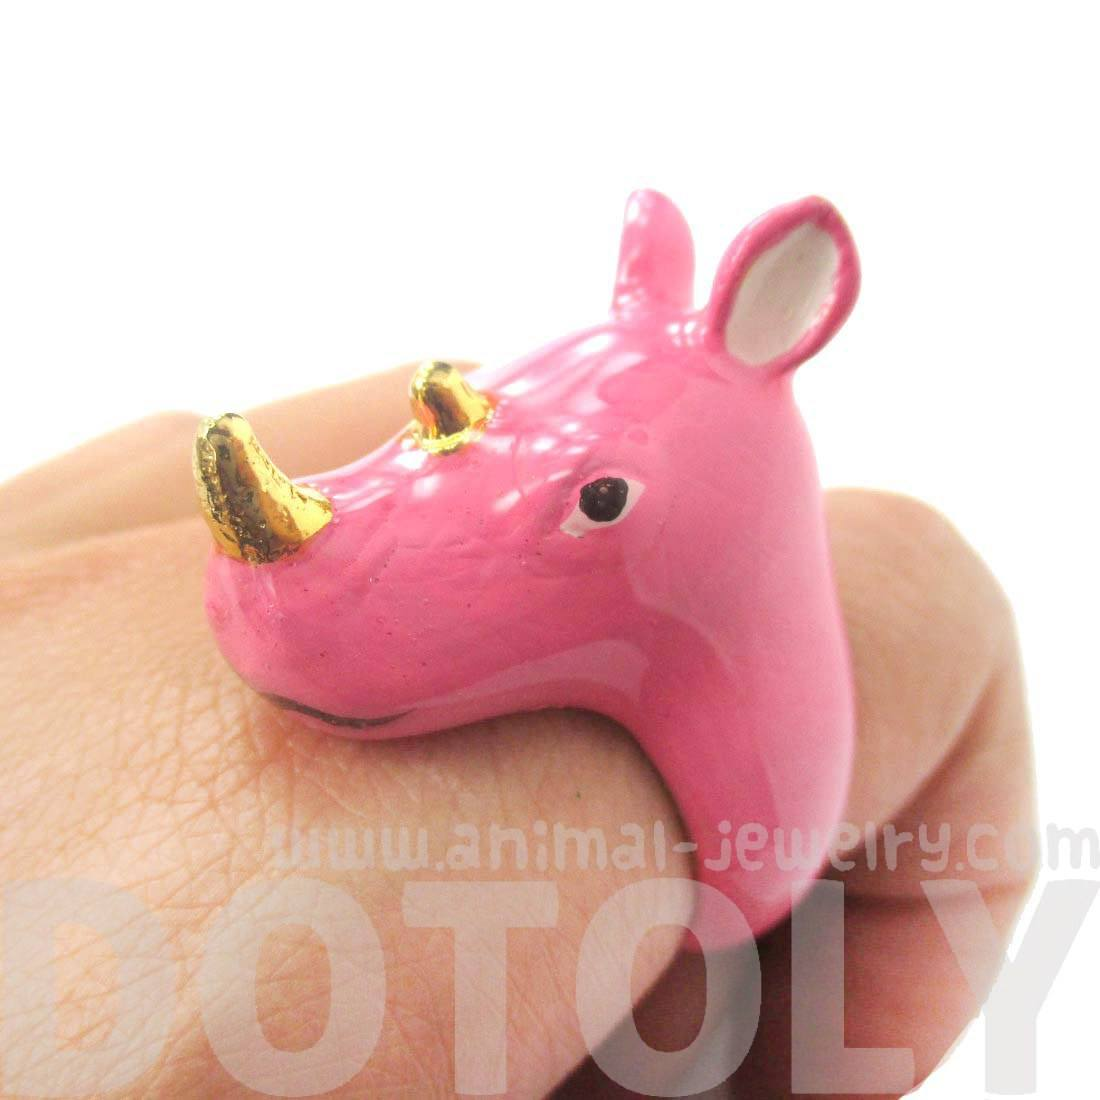 Pink Rhino Rhinoceros Shaped Enamel Animal Ring in US Size 6 and 7